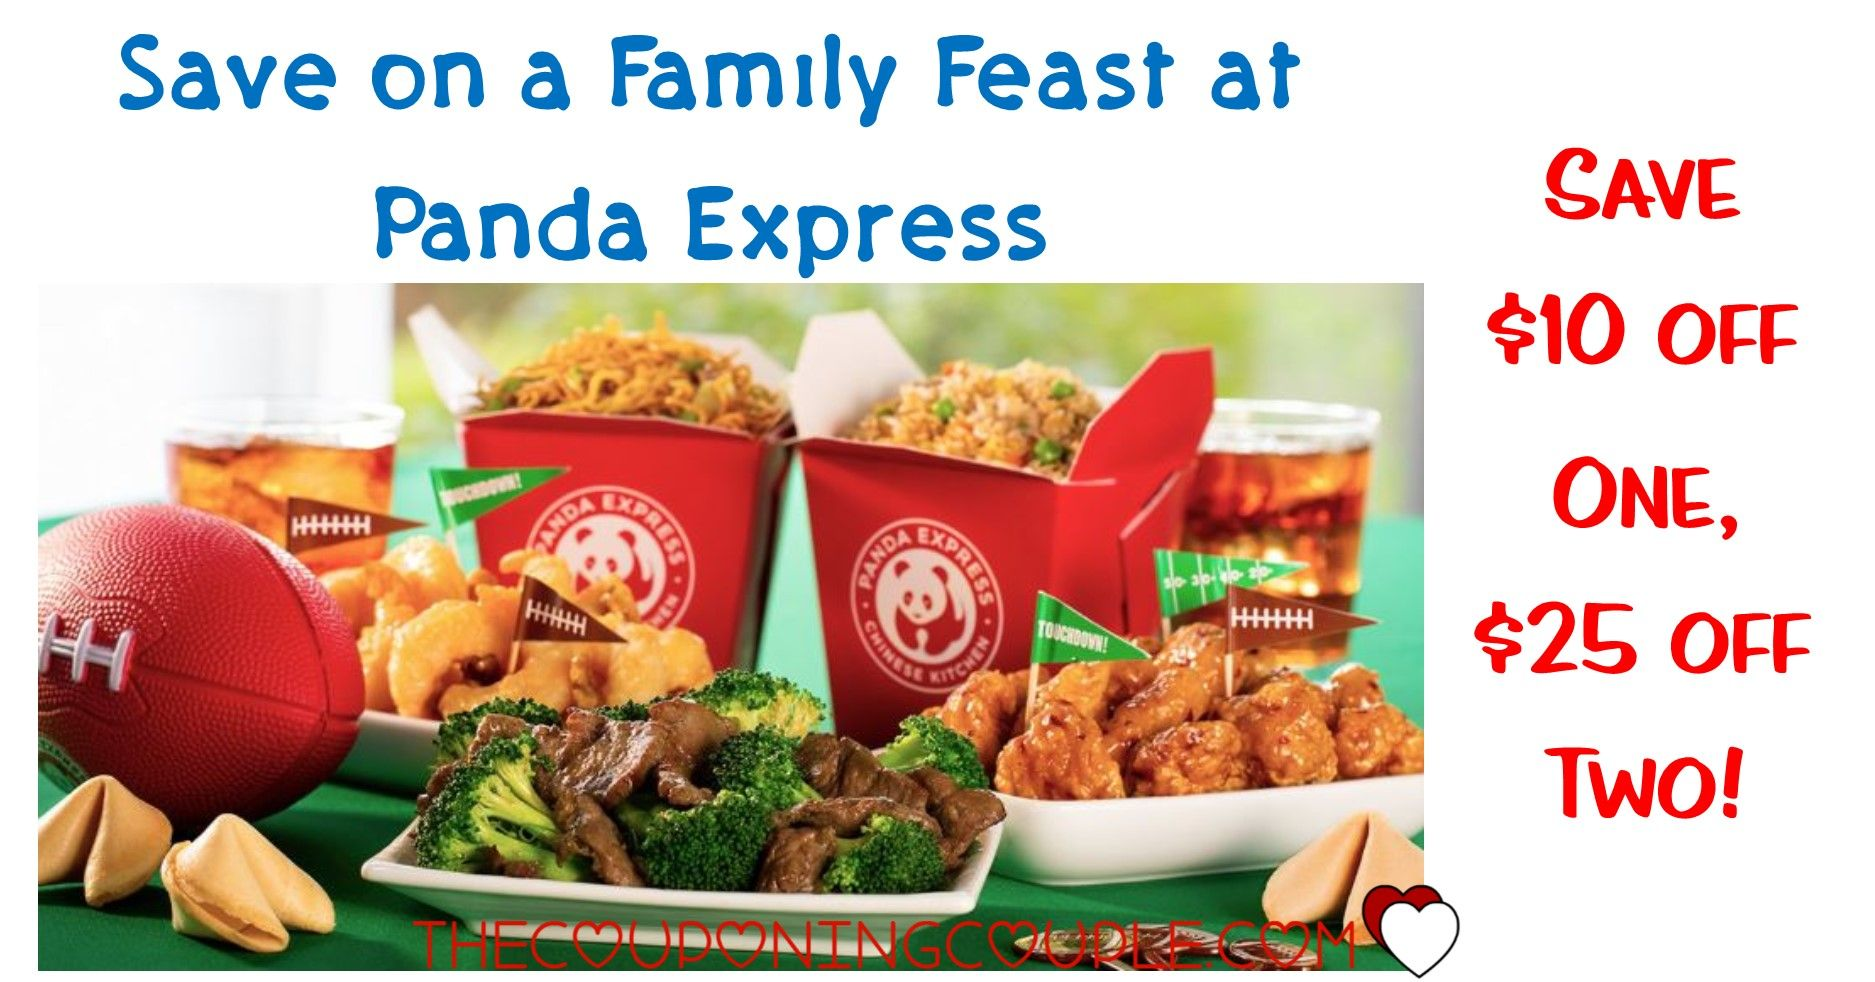 Family Feast For 20 00 At Panda Express Great Way To Save Family Feast Panda Express Feast